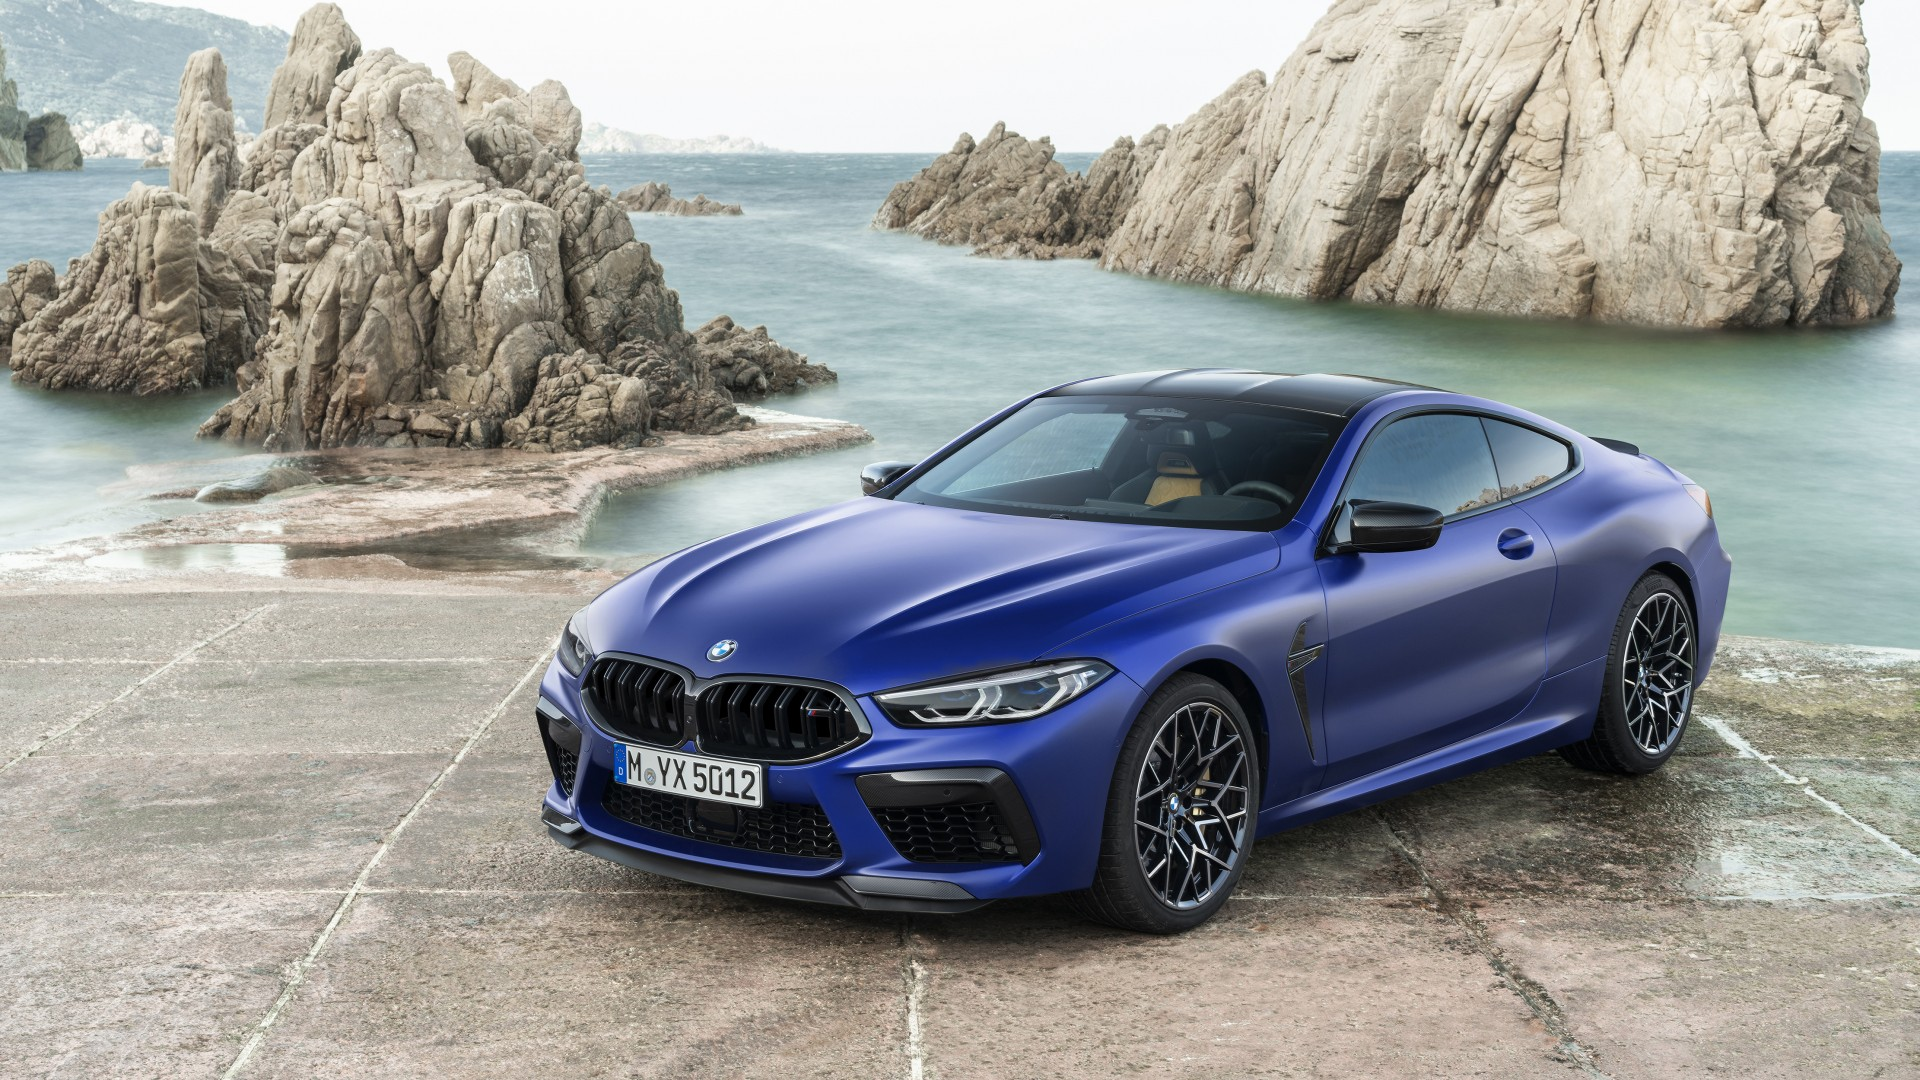 BMW M8 Competition Coupe 2019 4K Wallpaper | HD Car ...